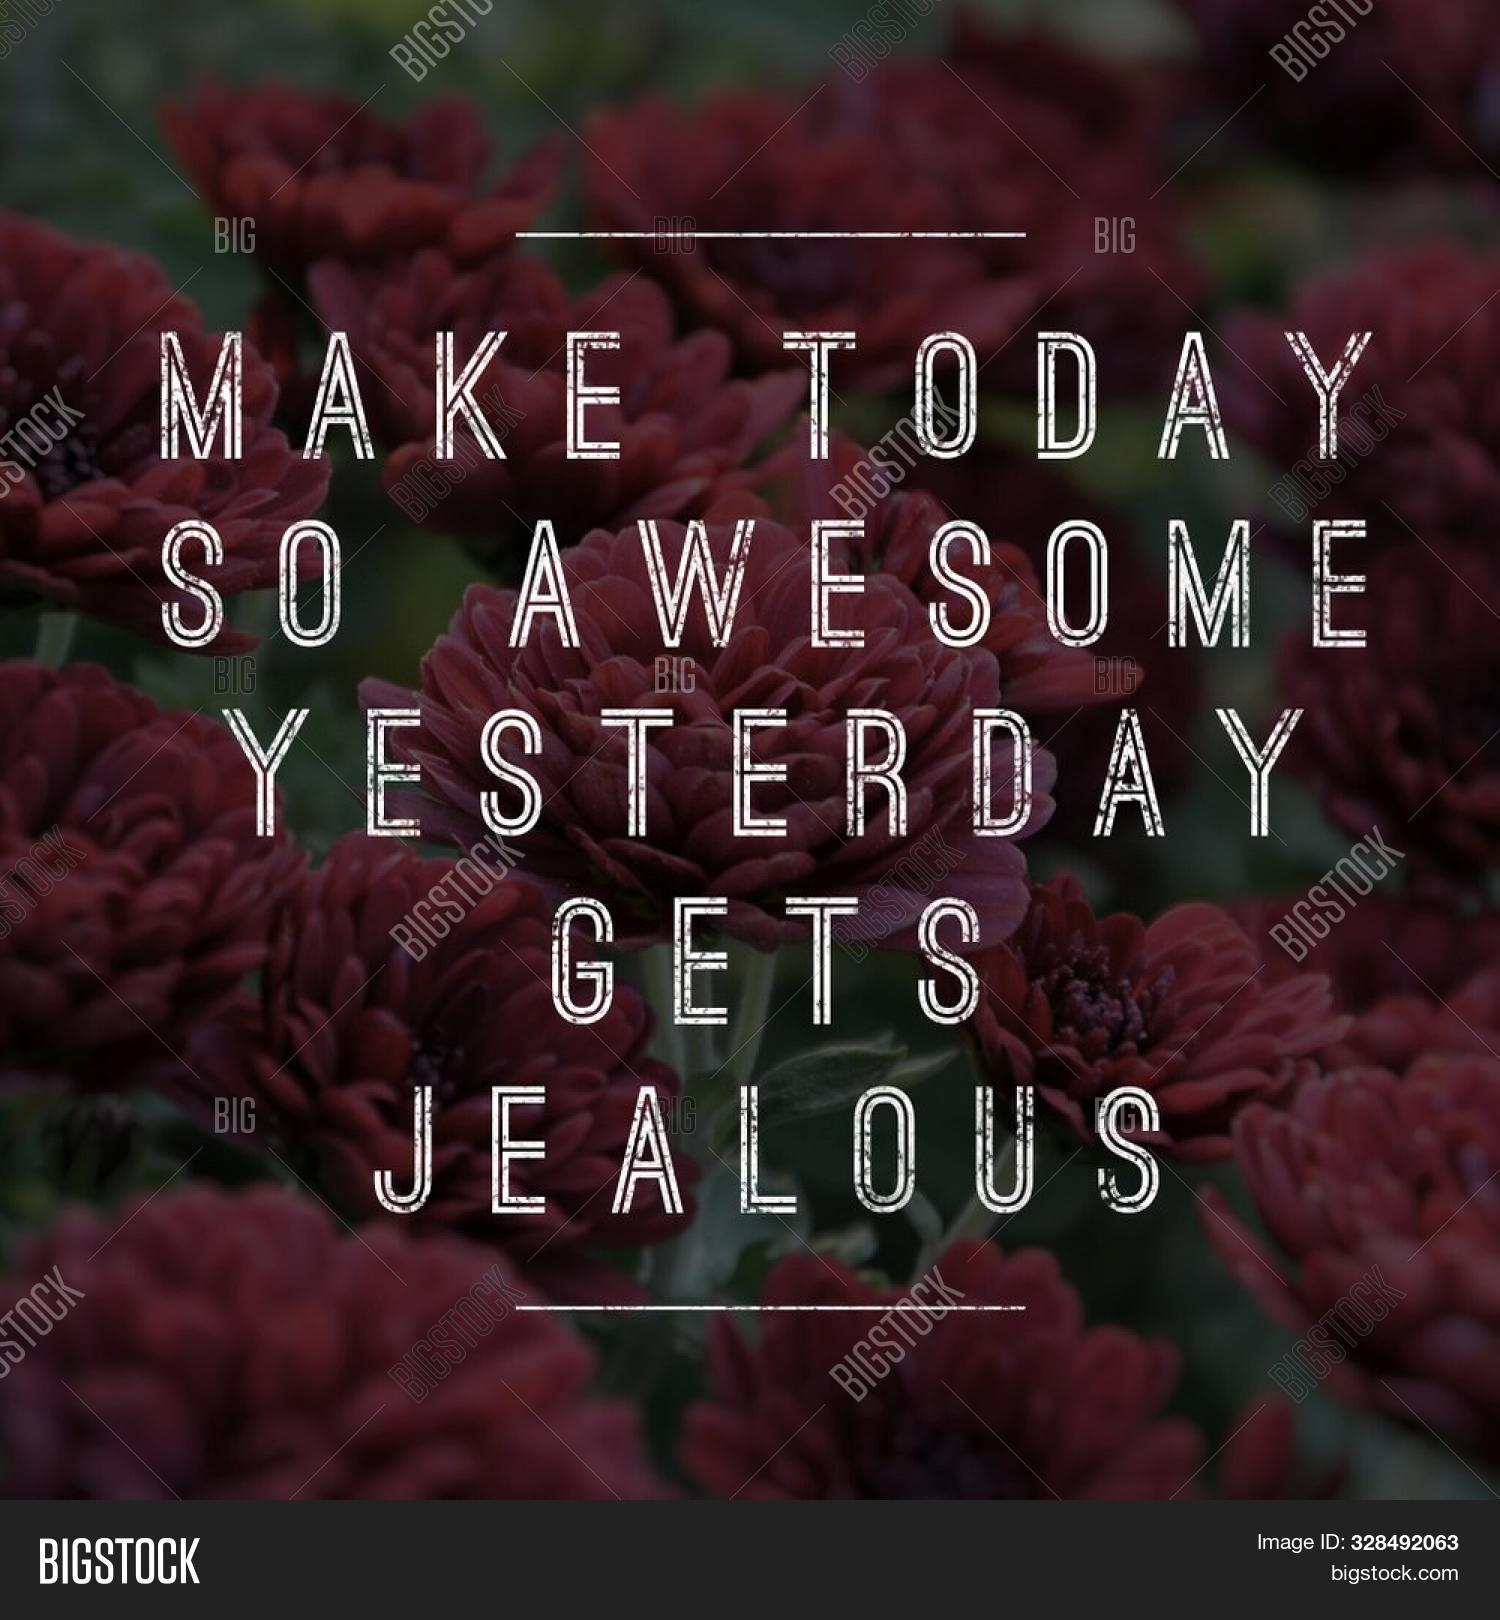 Positive Quotes Best Image Photo Free Trial Bigstock